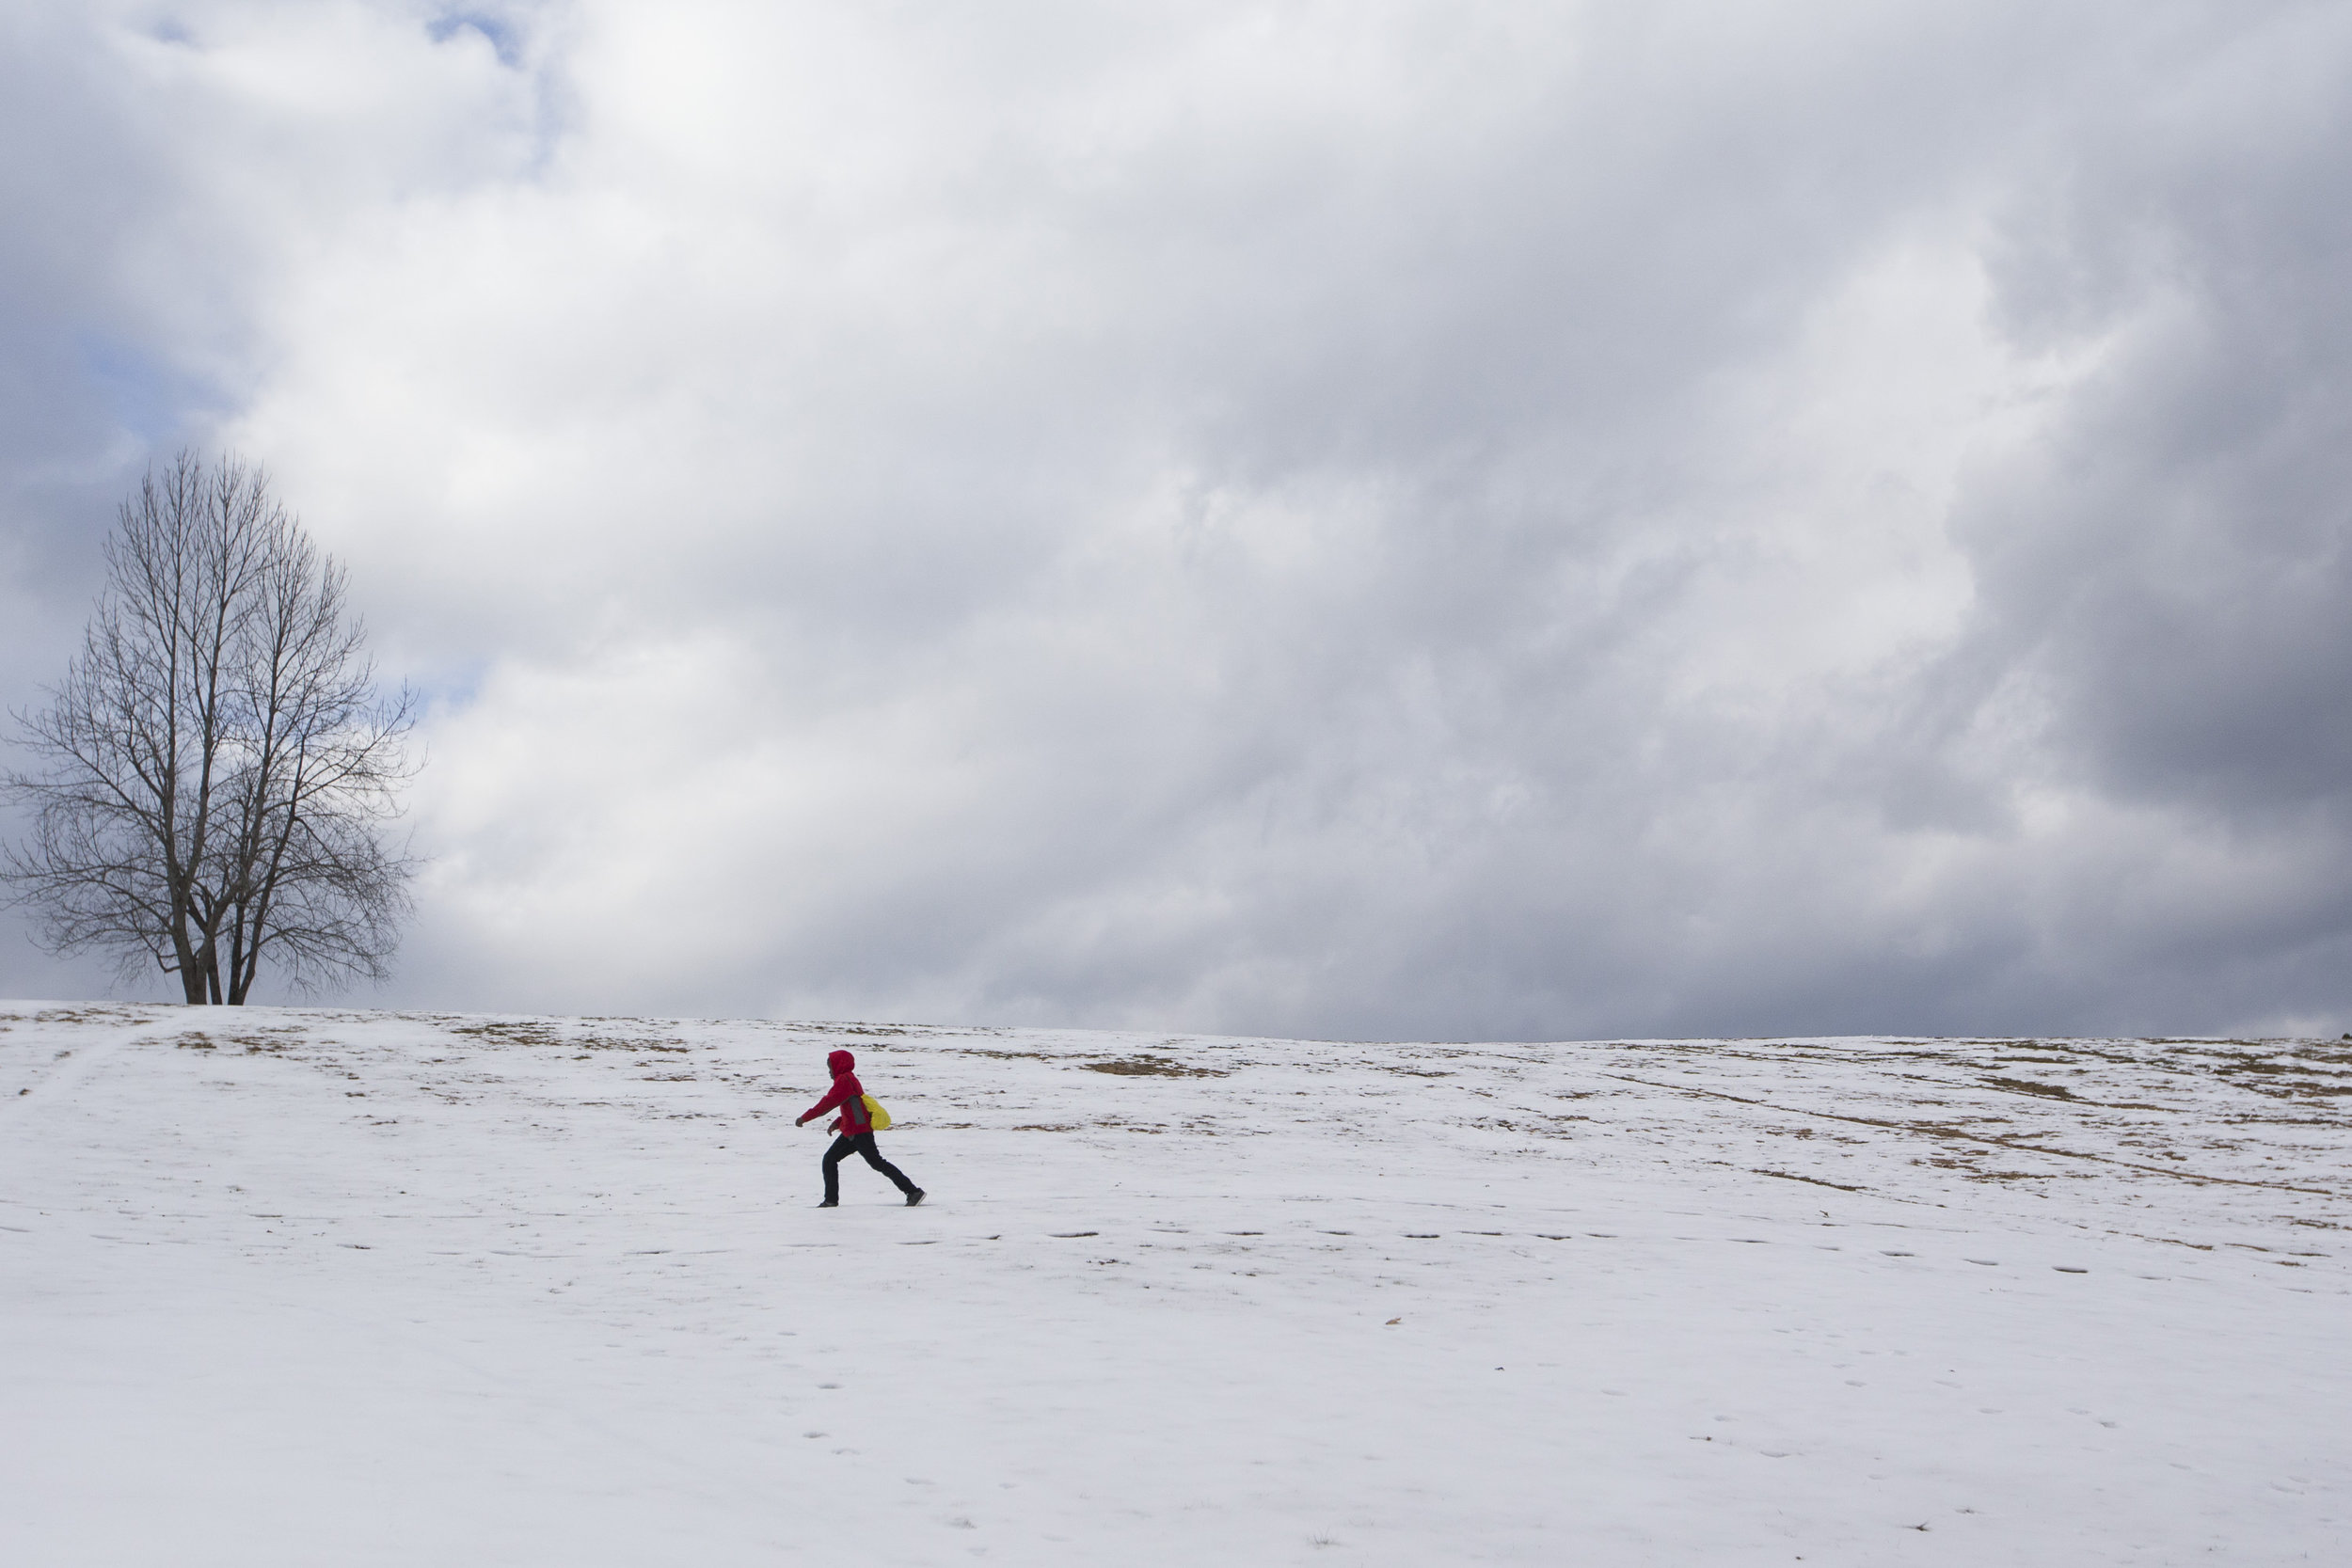 Edward Boderbe, 9 of Worcester, trudges across a snow covered hill after playing soccer in Green Hill Park on January 29, 2017 in Worcester, Massachusetts